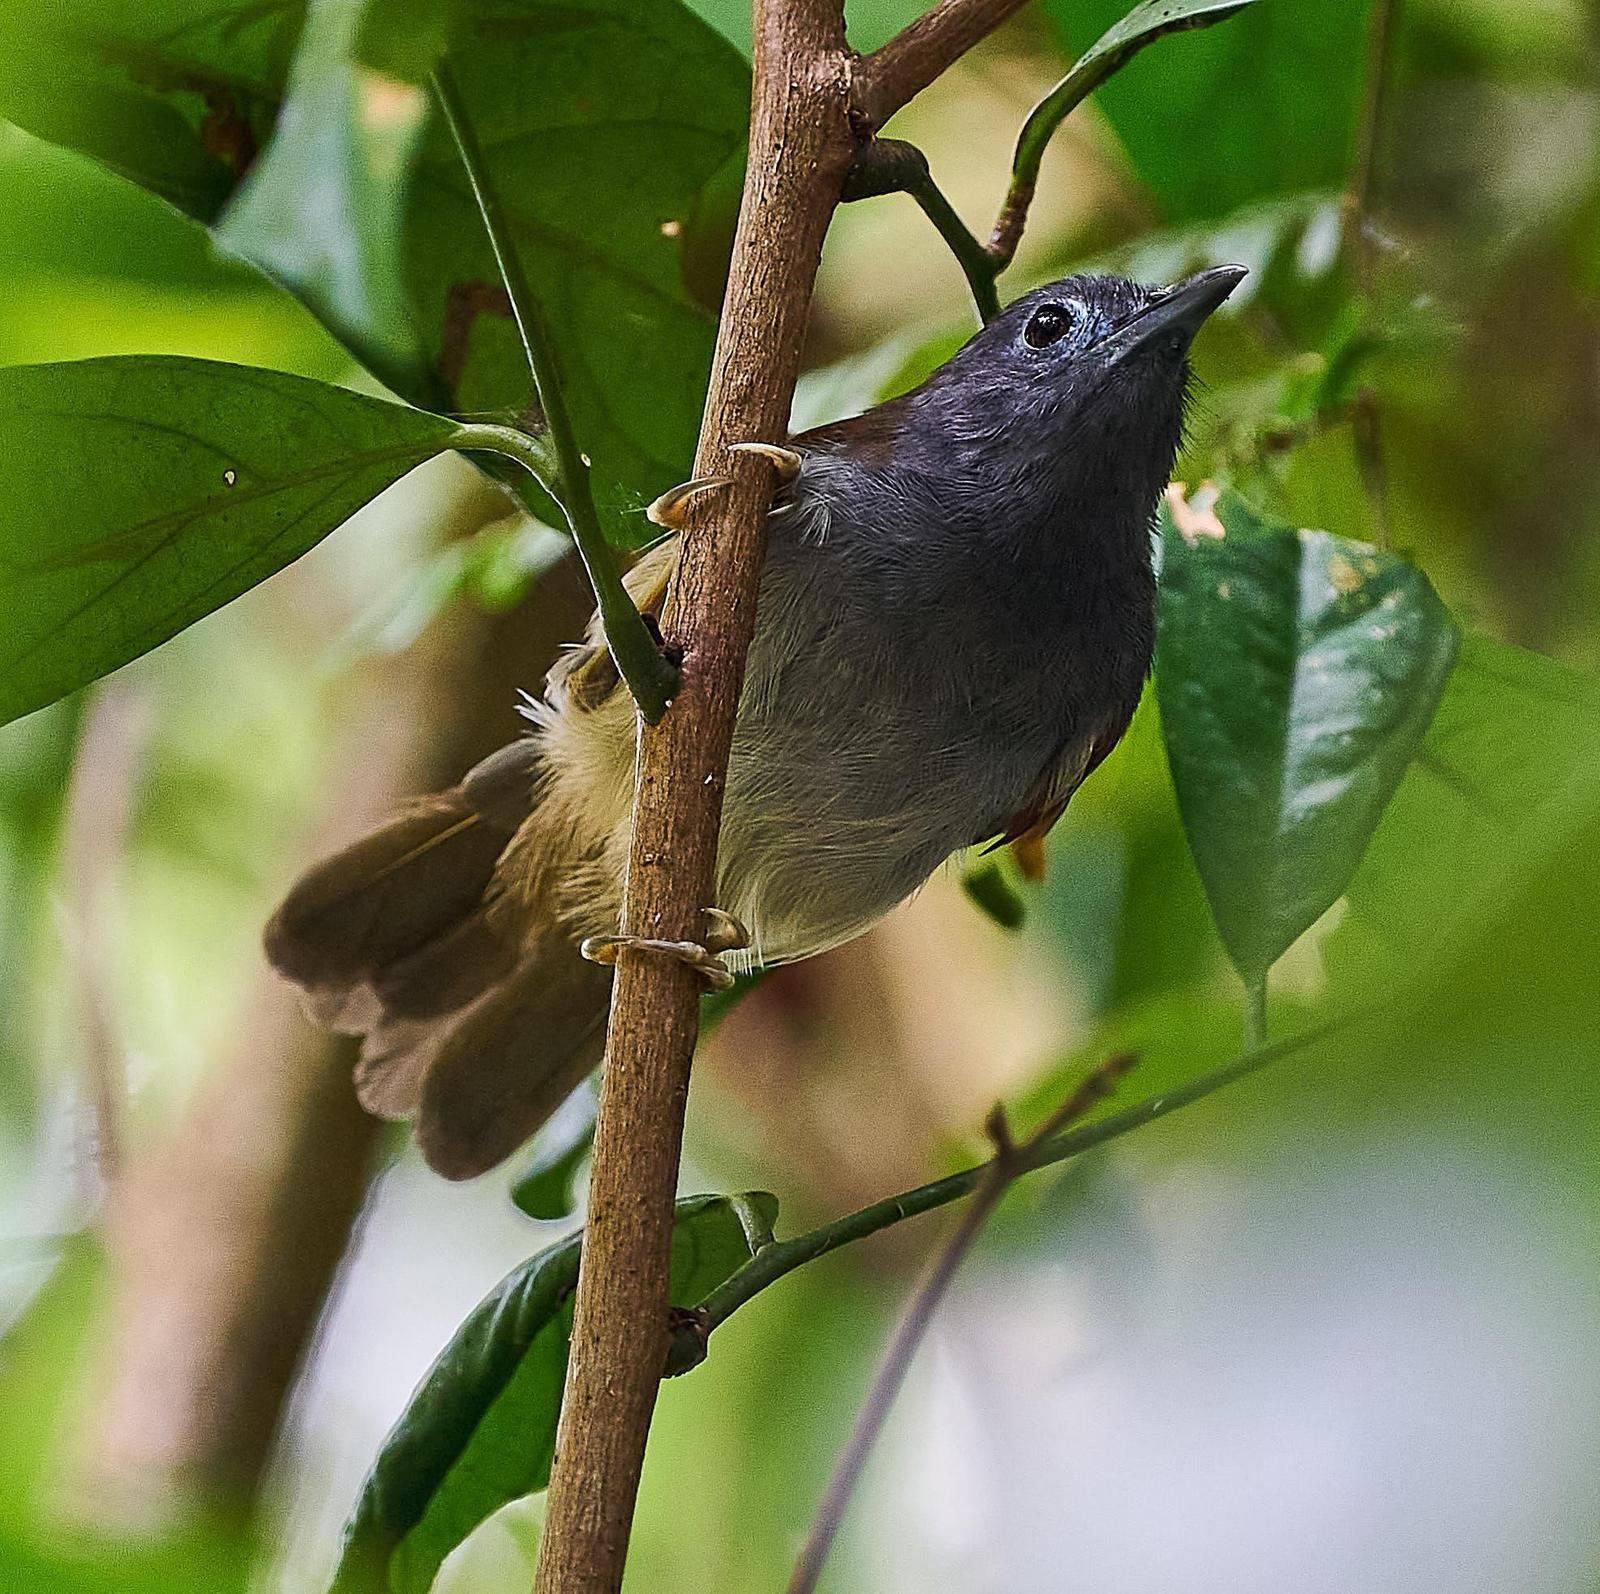 Chestnut-winged Babbler Photo by Steven Cheong